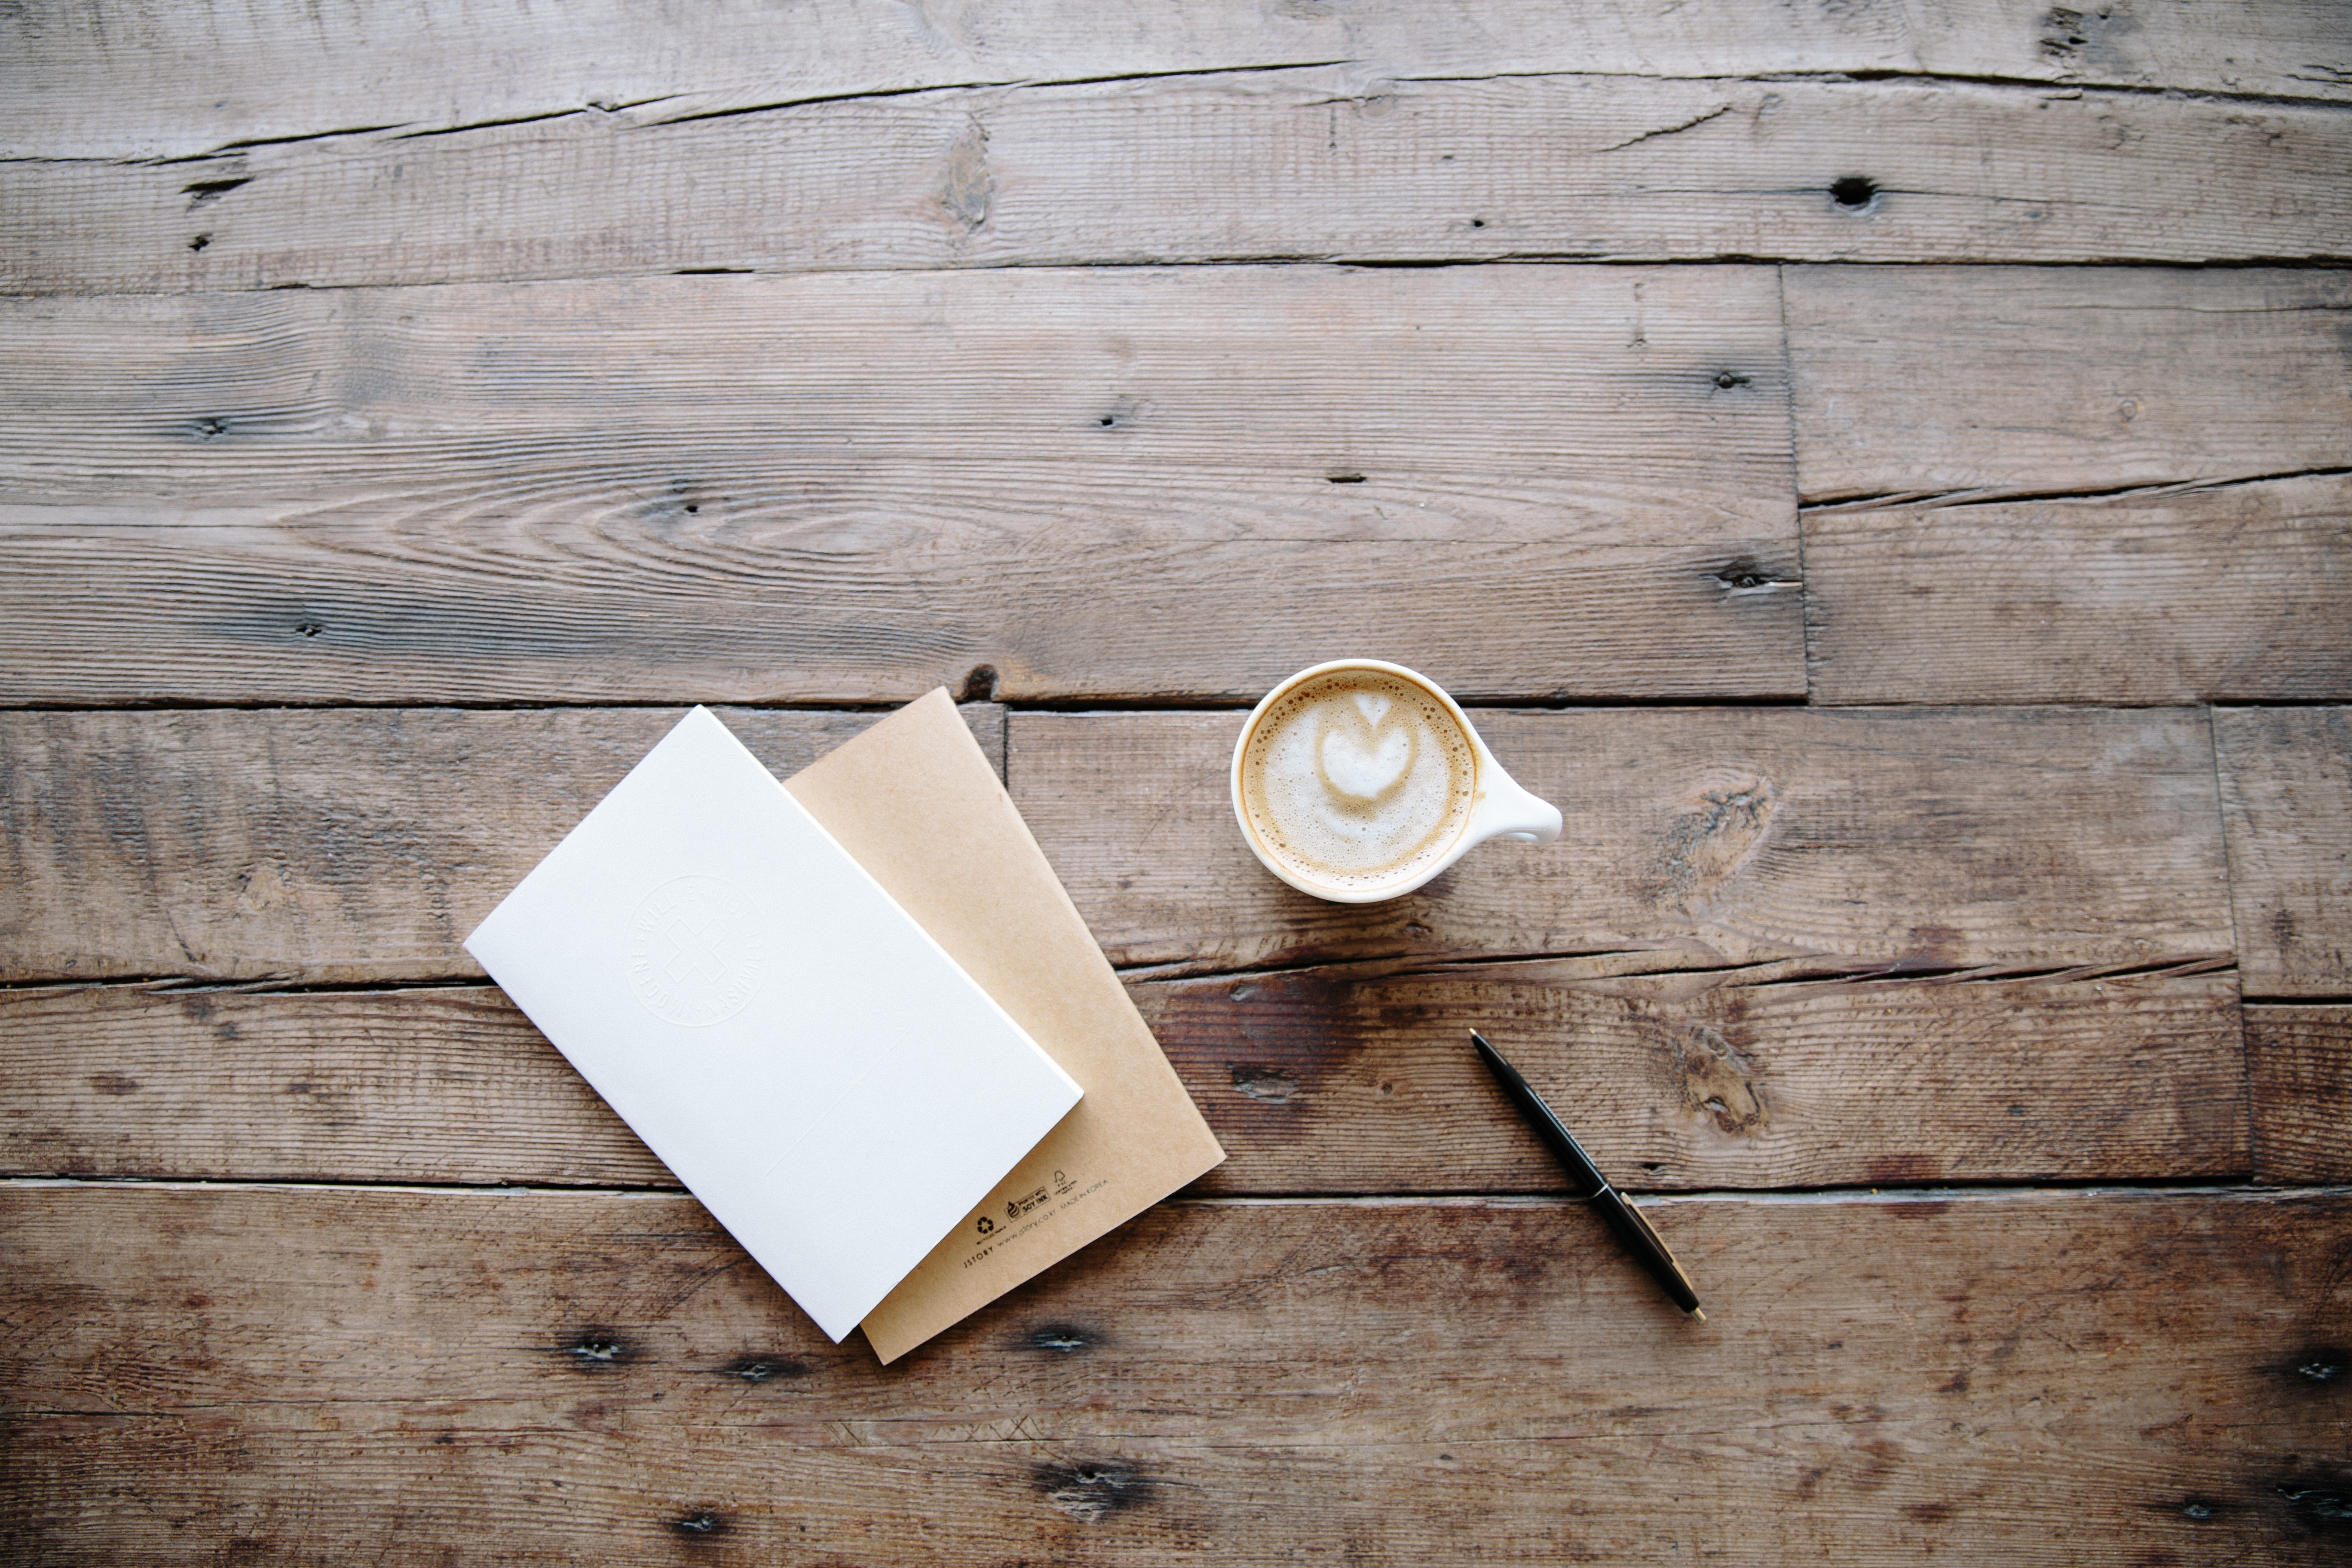 An overhead shot of a cup of coffee, a pen and two notebooks on a wooden surface